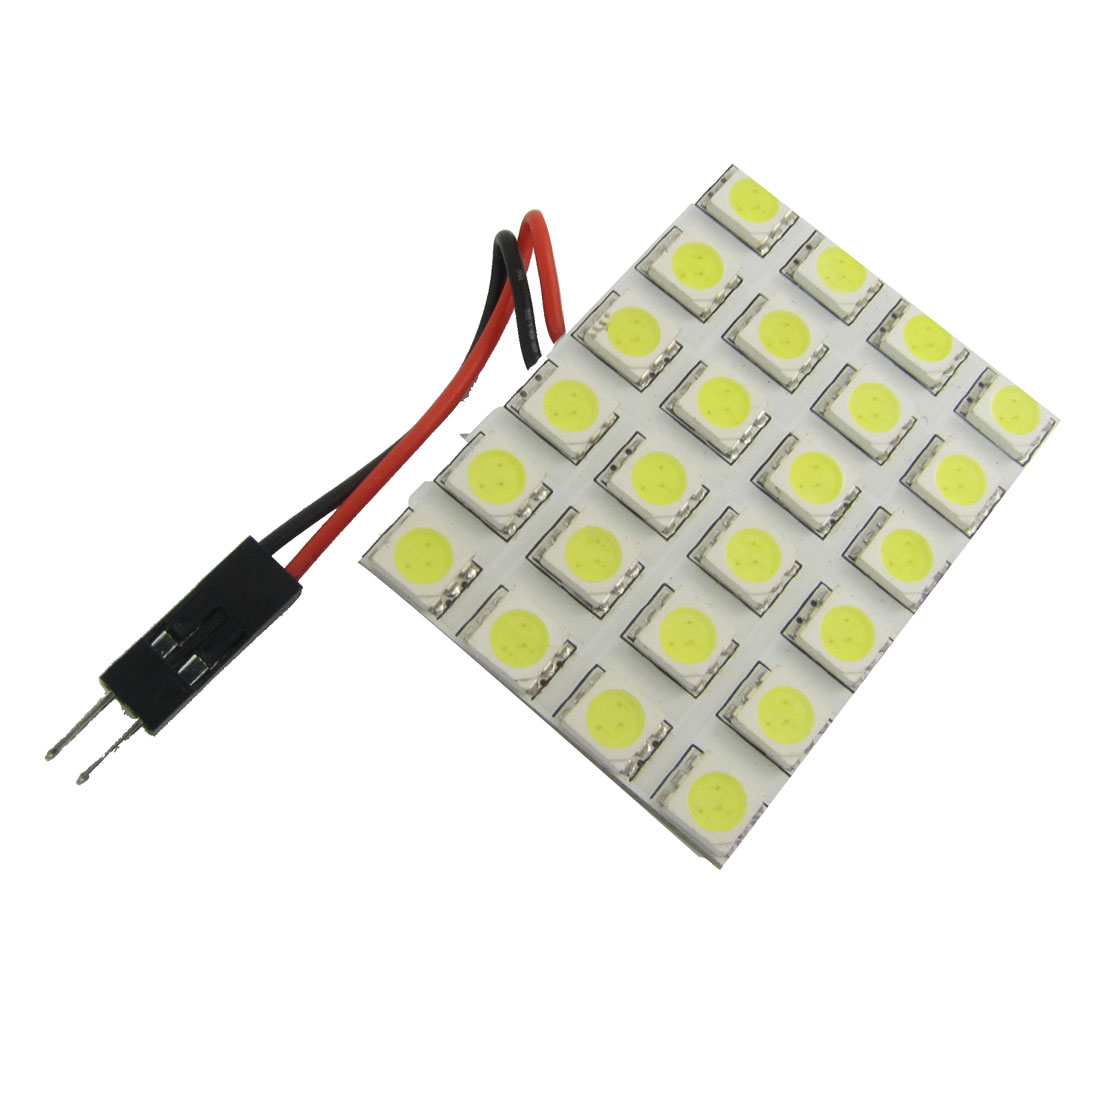 Car Interior White 5050 SMD 24 LED Dome Light Panel T10 BA9S Festoon Adapter